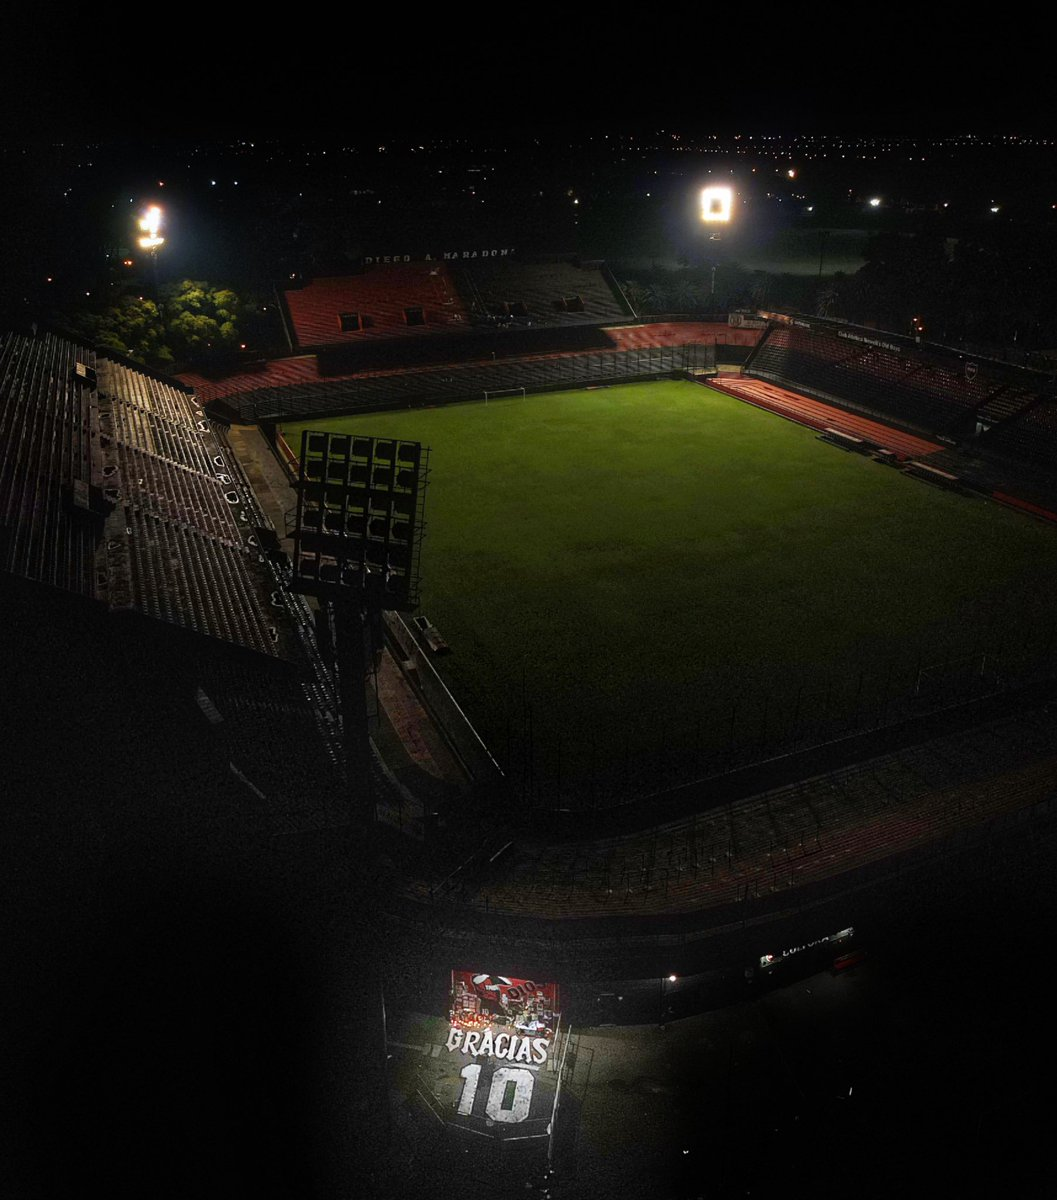 The number 10 keeps shining in Marcelo Bielsa Stadium.   The floodlights are remaining switched on paying tribute to the eternal idol.   #DiegoEterno ♾ https://t.co/HkrHAr9GJj